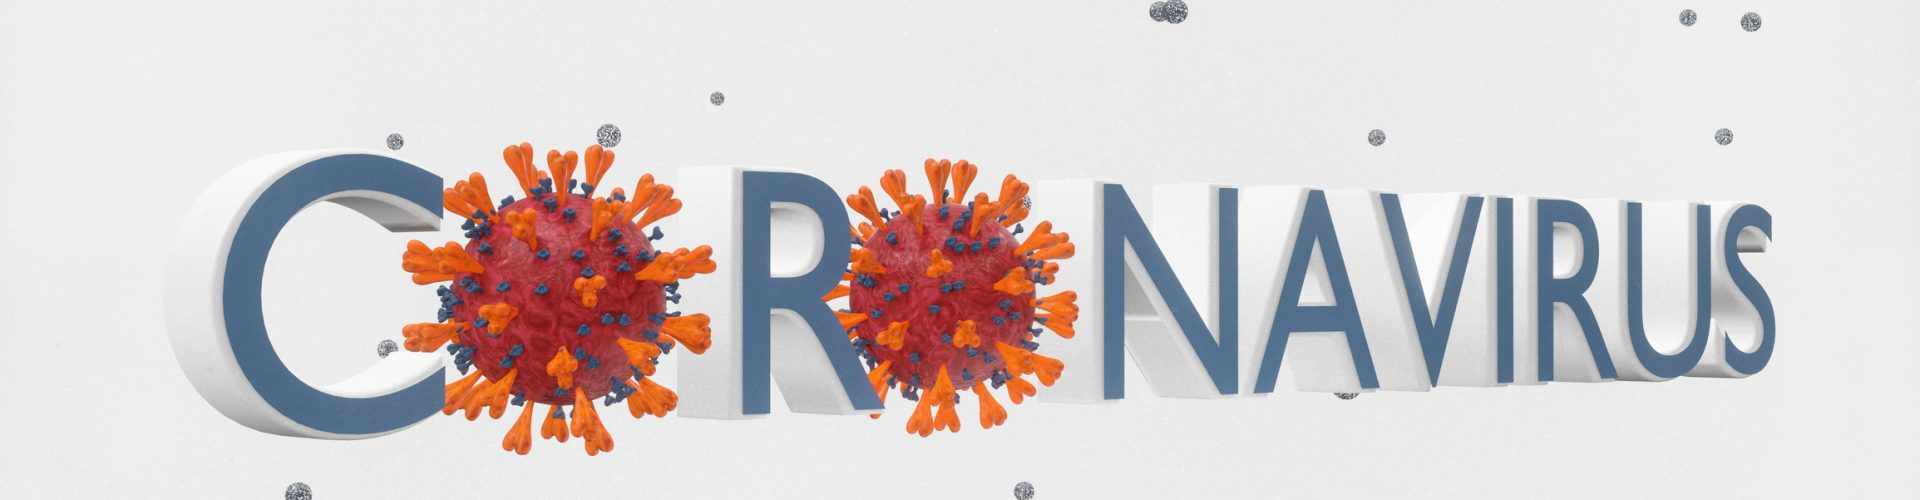 Abstract coronavirus banner - 3d rendered image of virus, bacteria, pathogen. Retro style. Particle effect. Abstract biology and technology background. Nanotechnology concept. Banner Sign view with information text. Concept - MERS-CoV, SARS-CoV, ТОРС, 2019-nCoV, Wuhan Coronavirus.